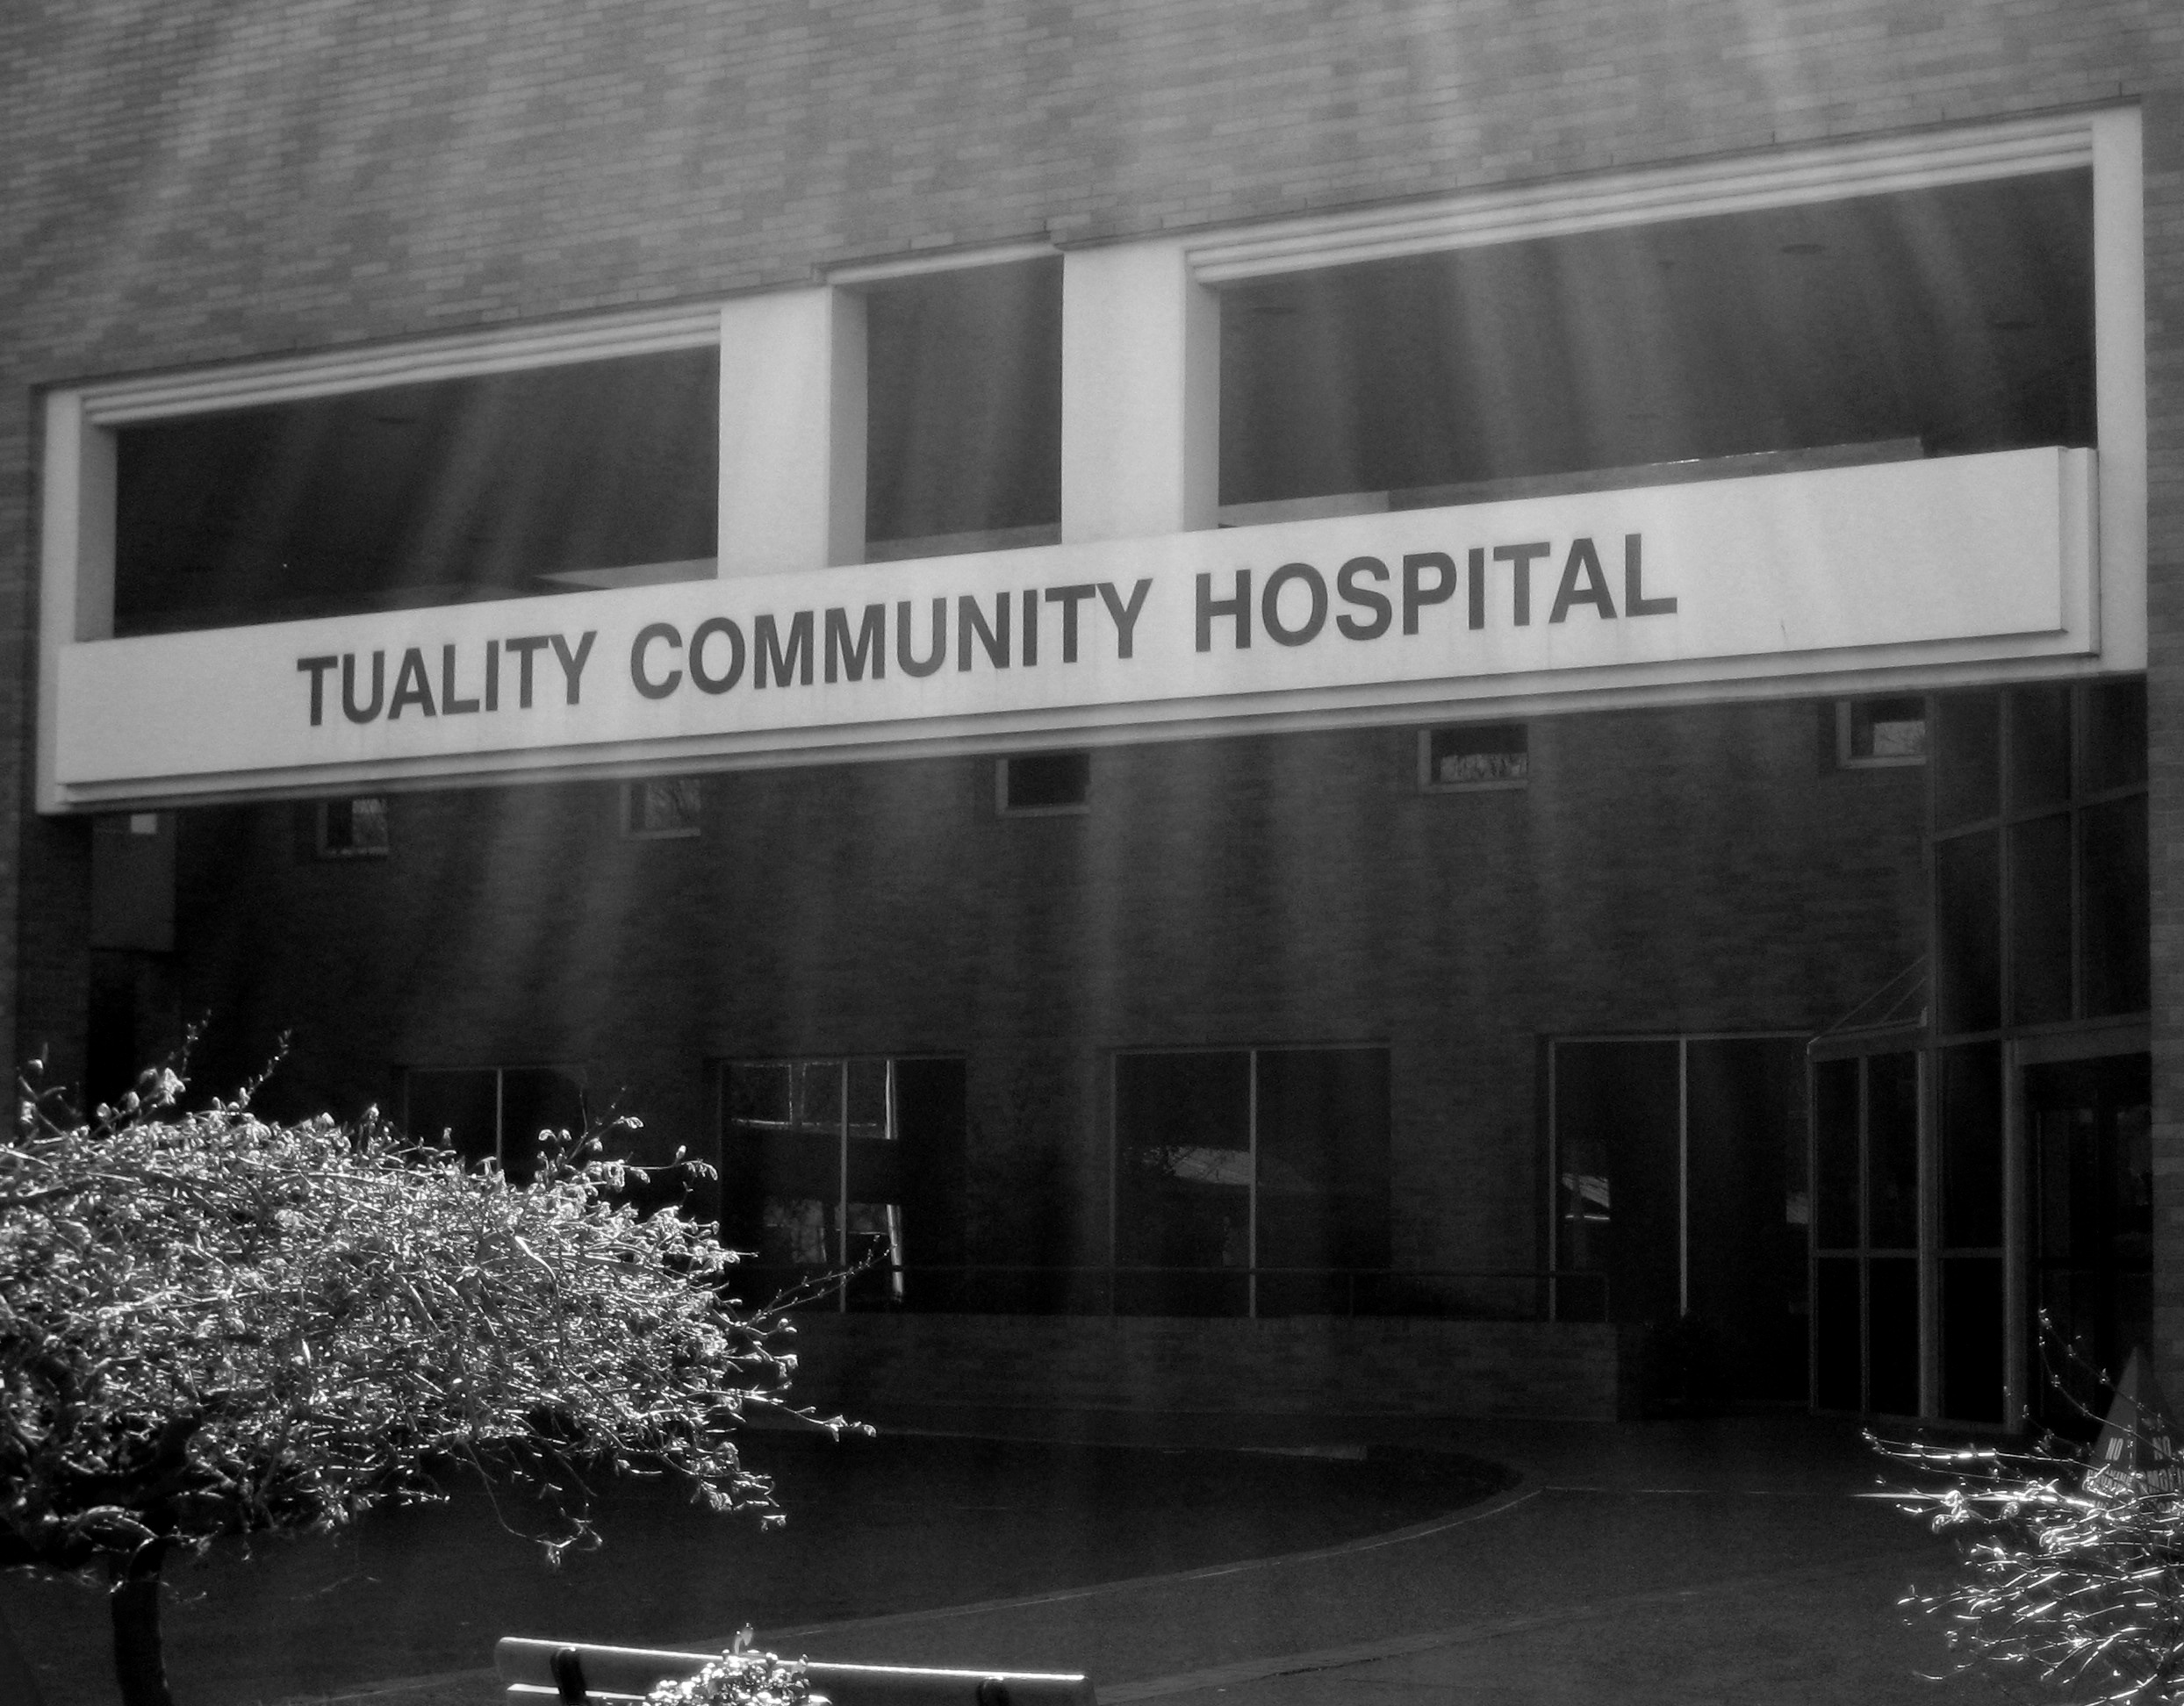 financial plan for patton fuller community hospital Resources: budgets under chief financial officer in the patton-fuller community hospital virtual organization and the health care business analysis grading criteria located on your student.